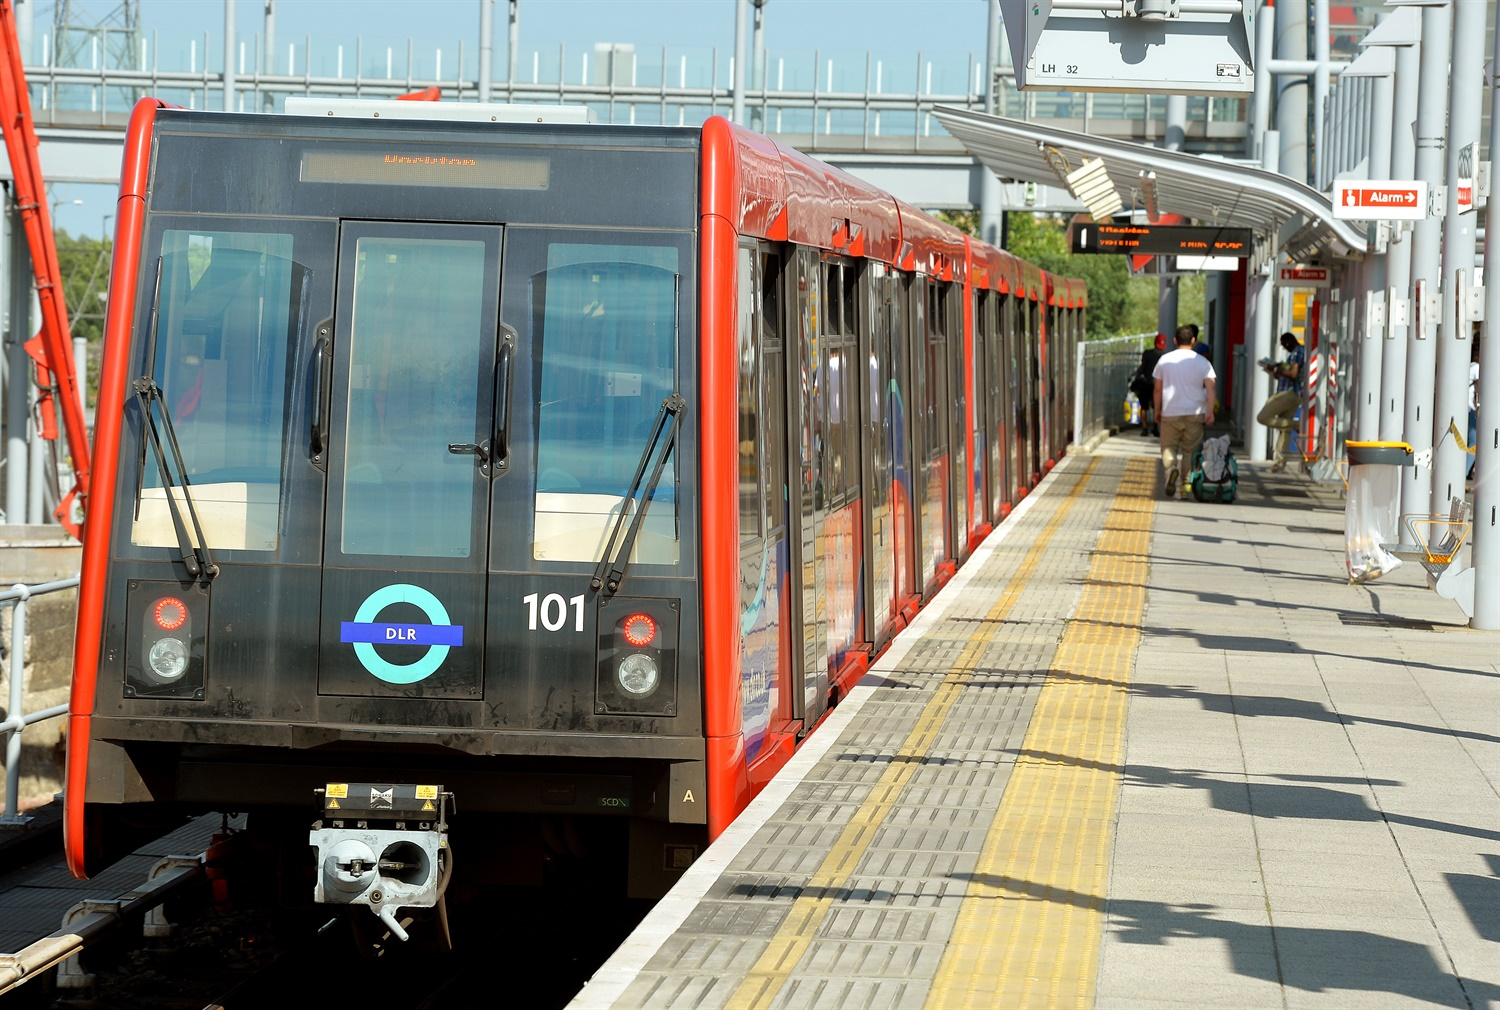 TfL awards contract for new DLR fleet to replace 30-year-old trains